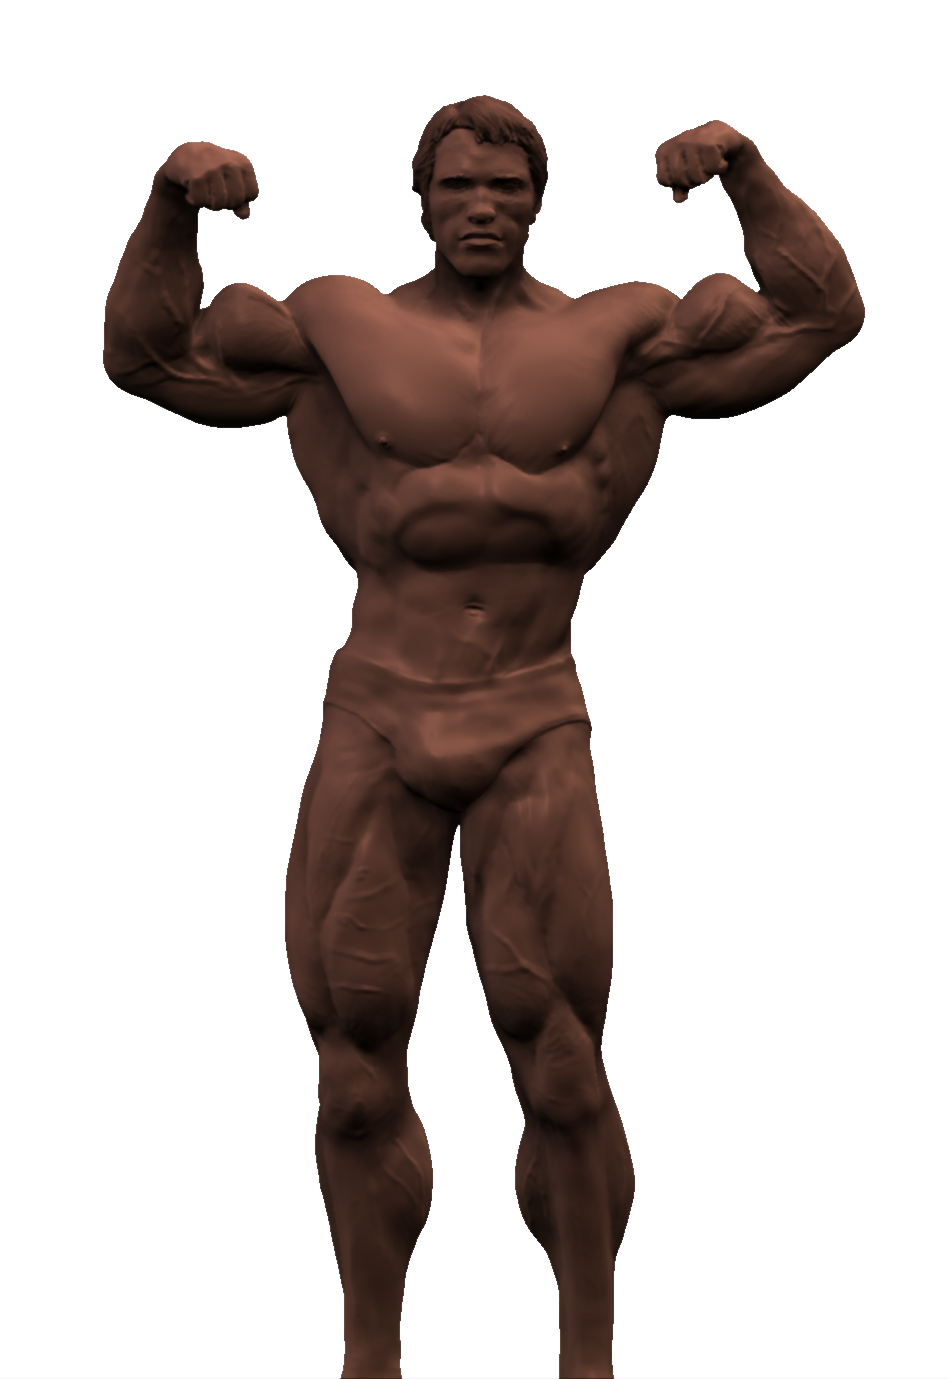 Download Arnold Schwarzenegger Transparent Background 029.